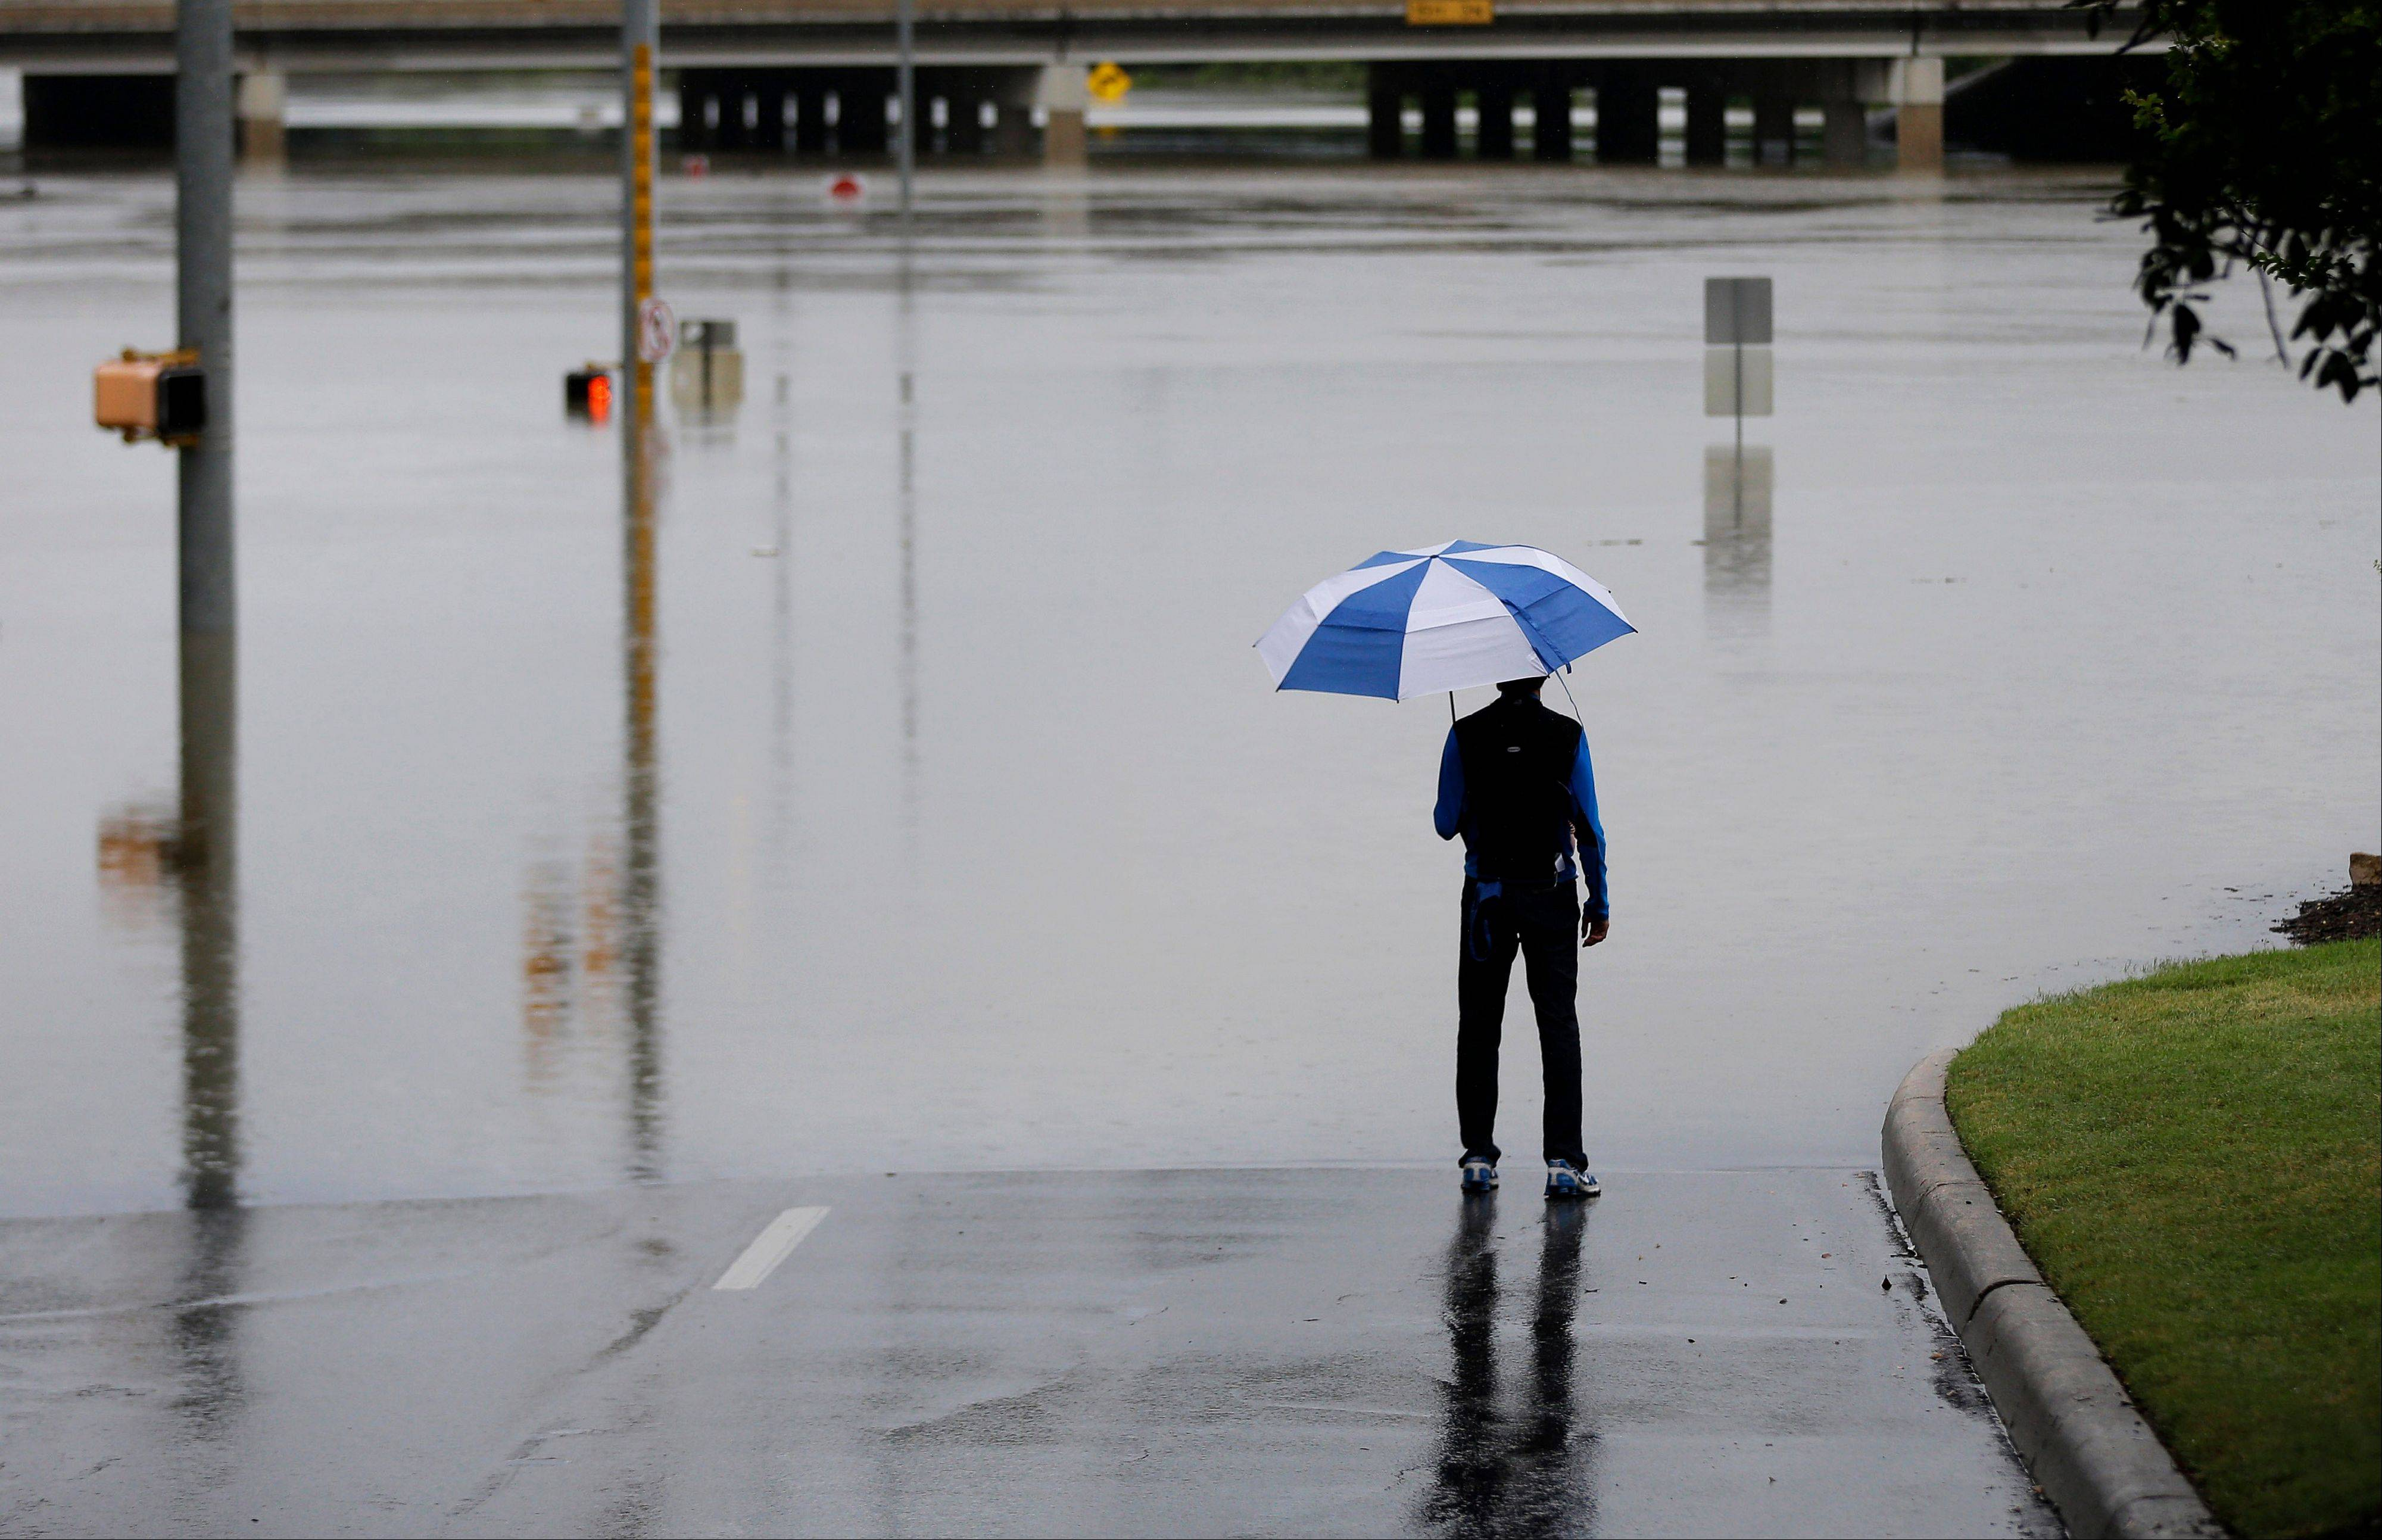 A man surveys floodwaters Saturday caused by heavy rains in San Antonio. The city has received torrential rains since Friday evening.